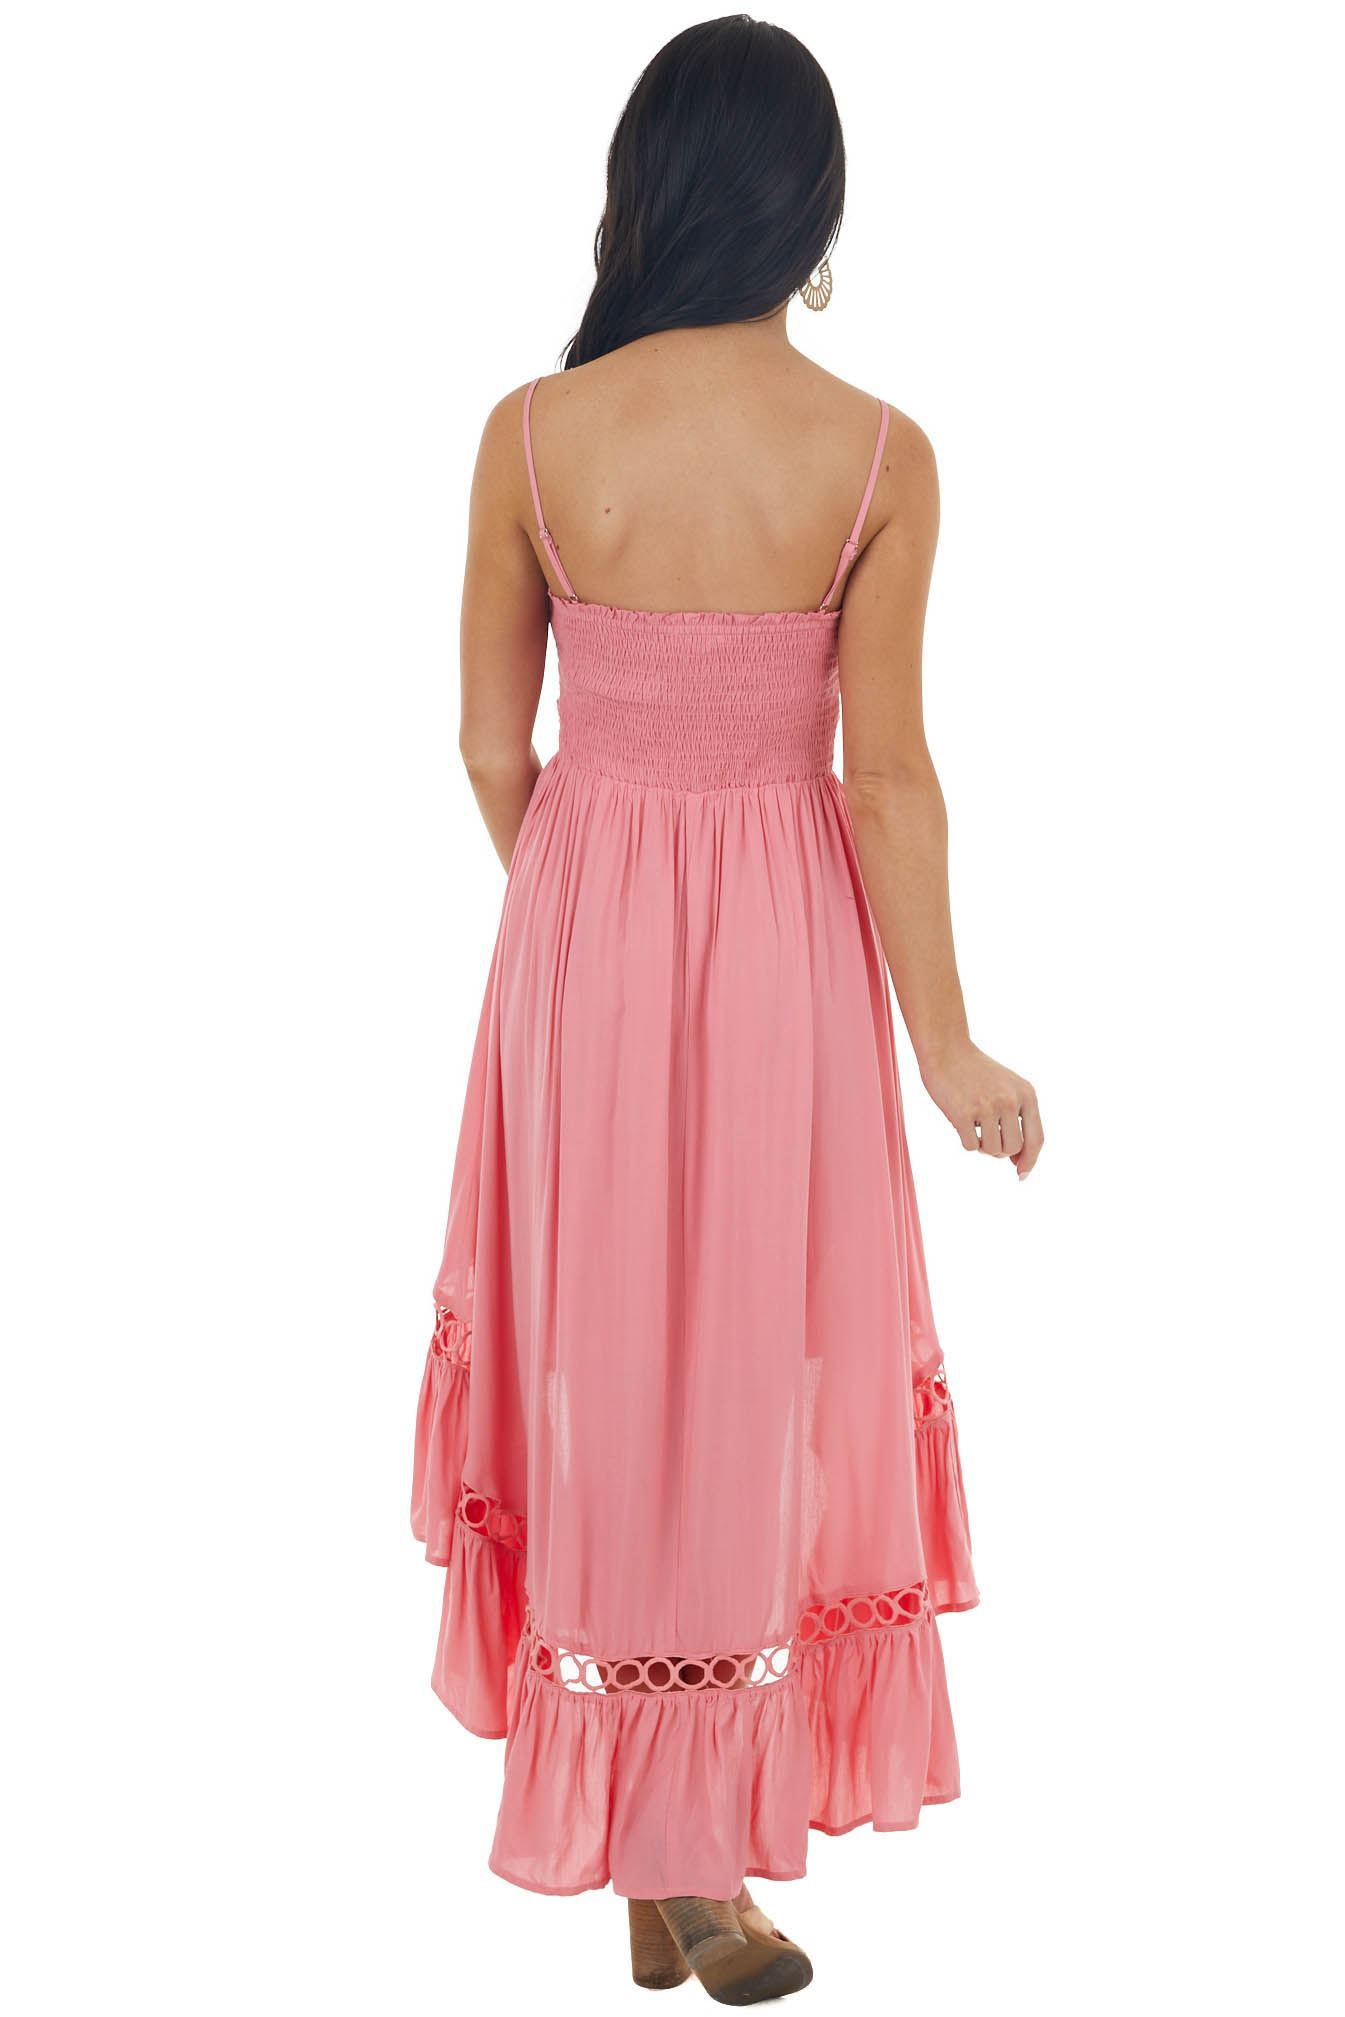 Coral High Low Midi Dress with Bust Tie and Peekaboo Details